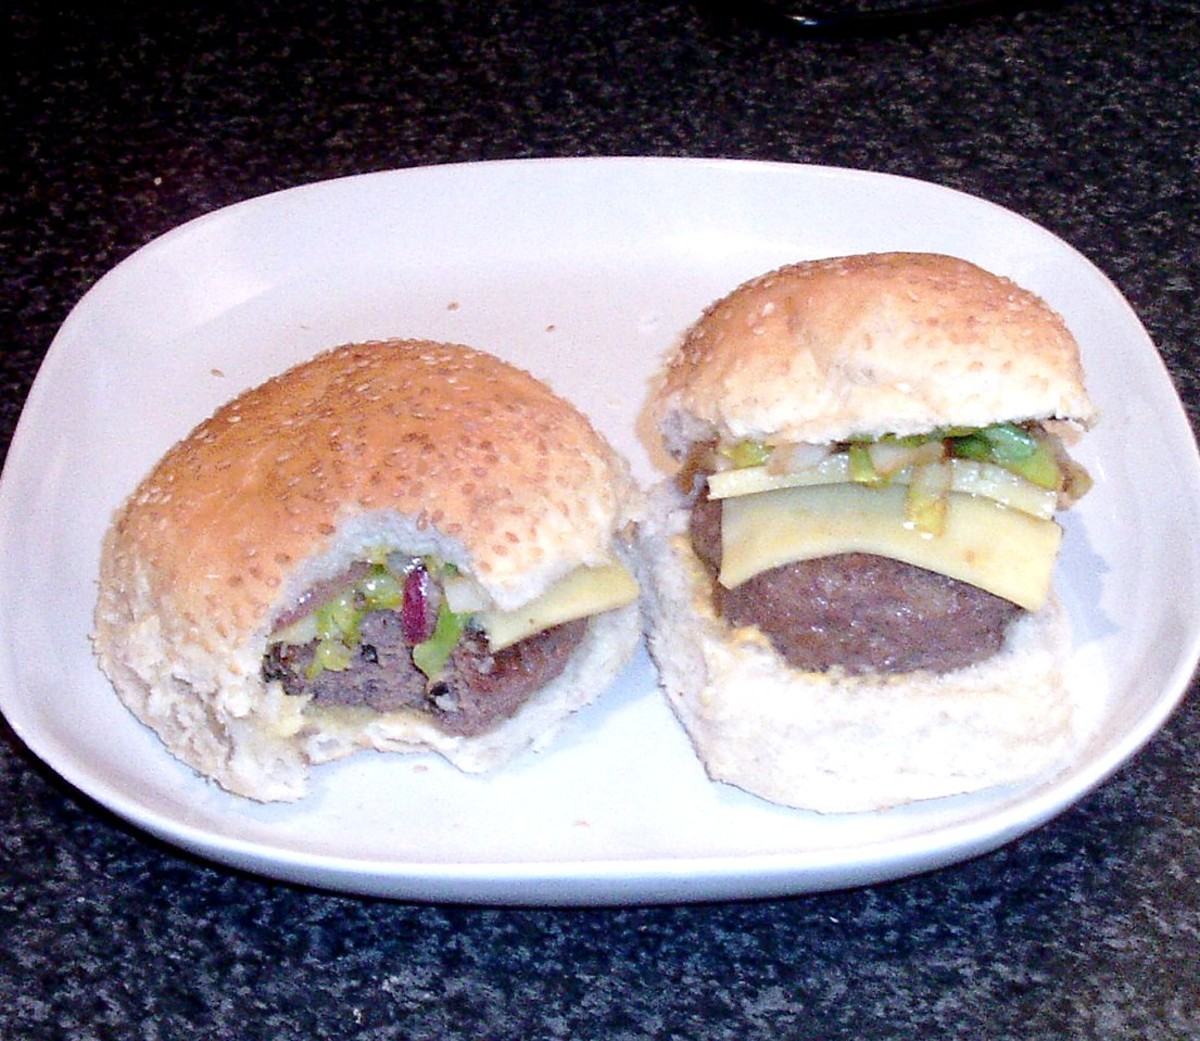 Biting in to cheeseburger with fried sprouts and onion